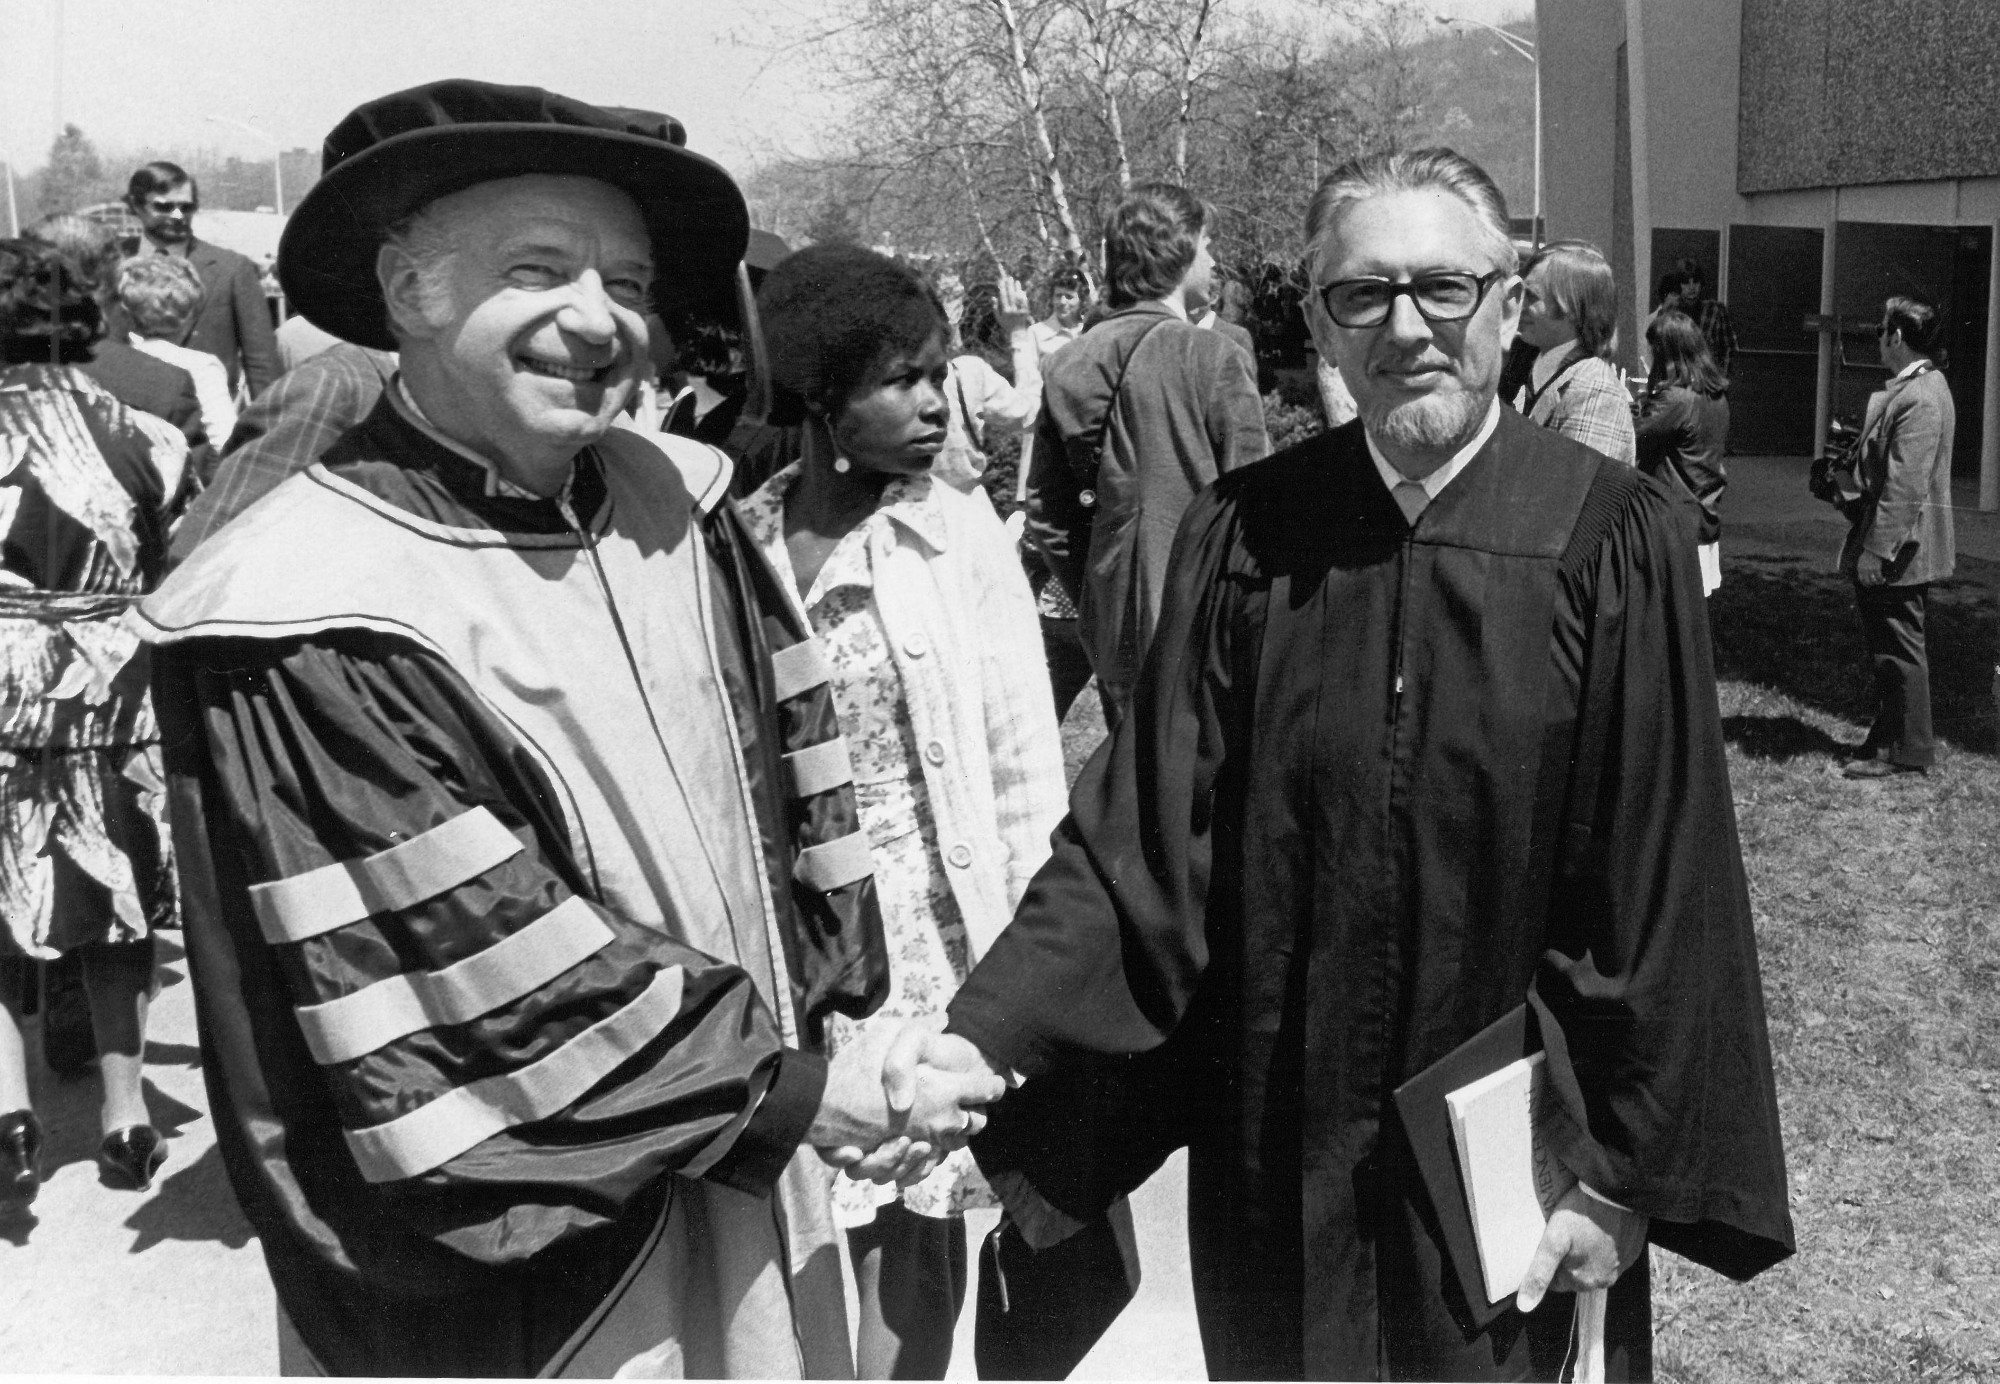 Frank at Syracuse University Commencement